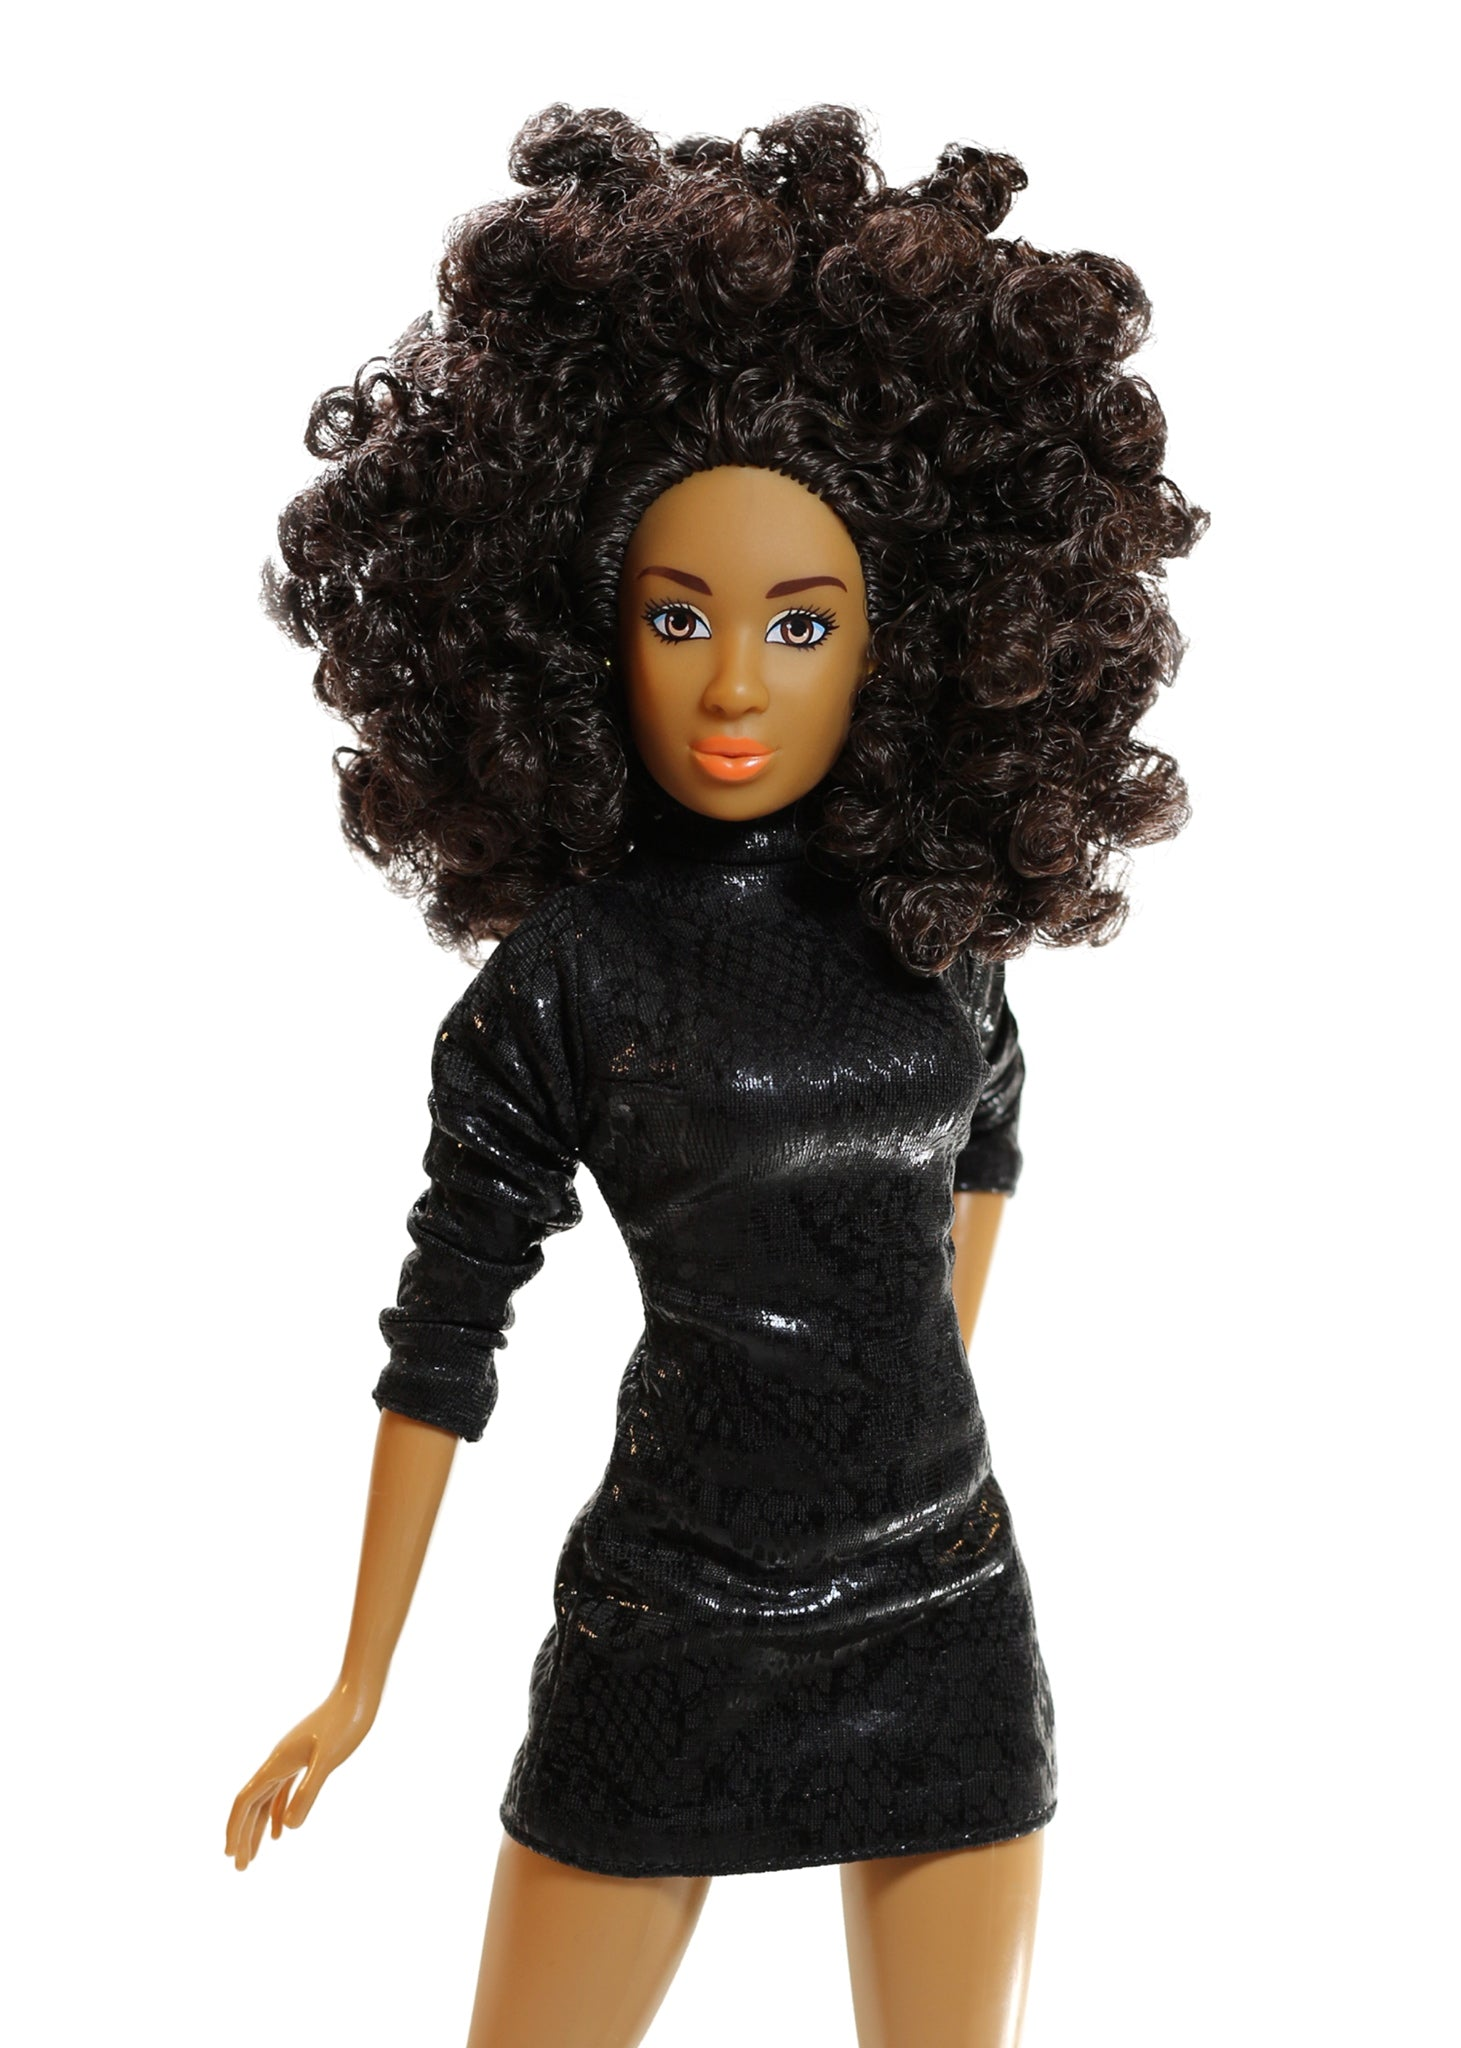 A fashion doll with curly hair and black dress.